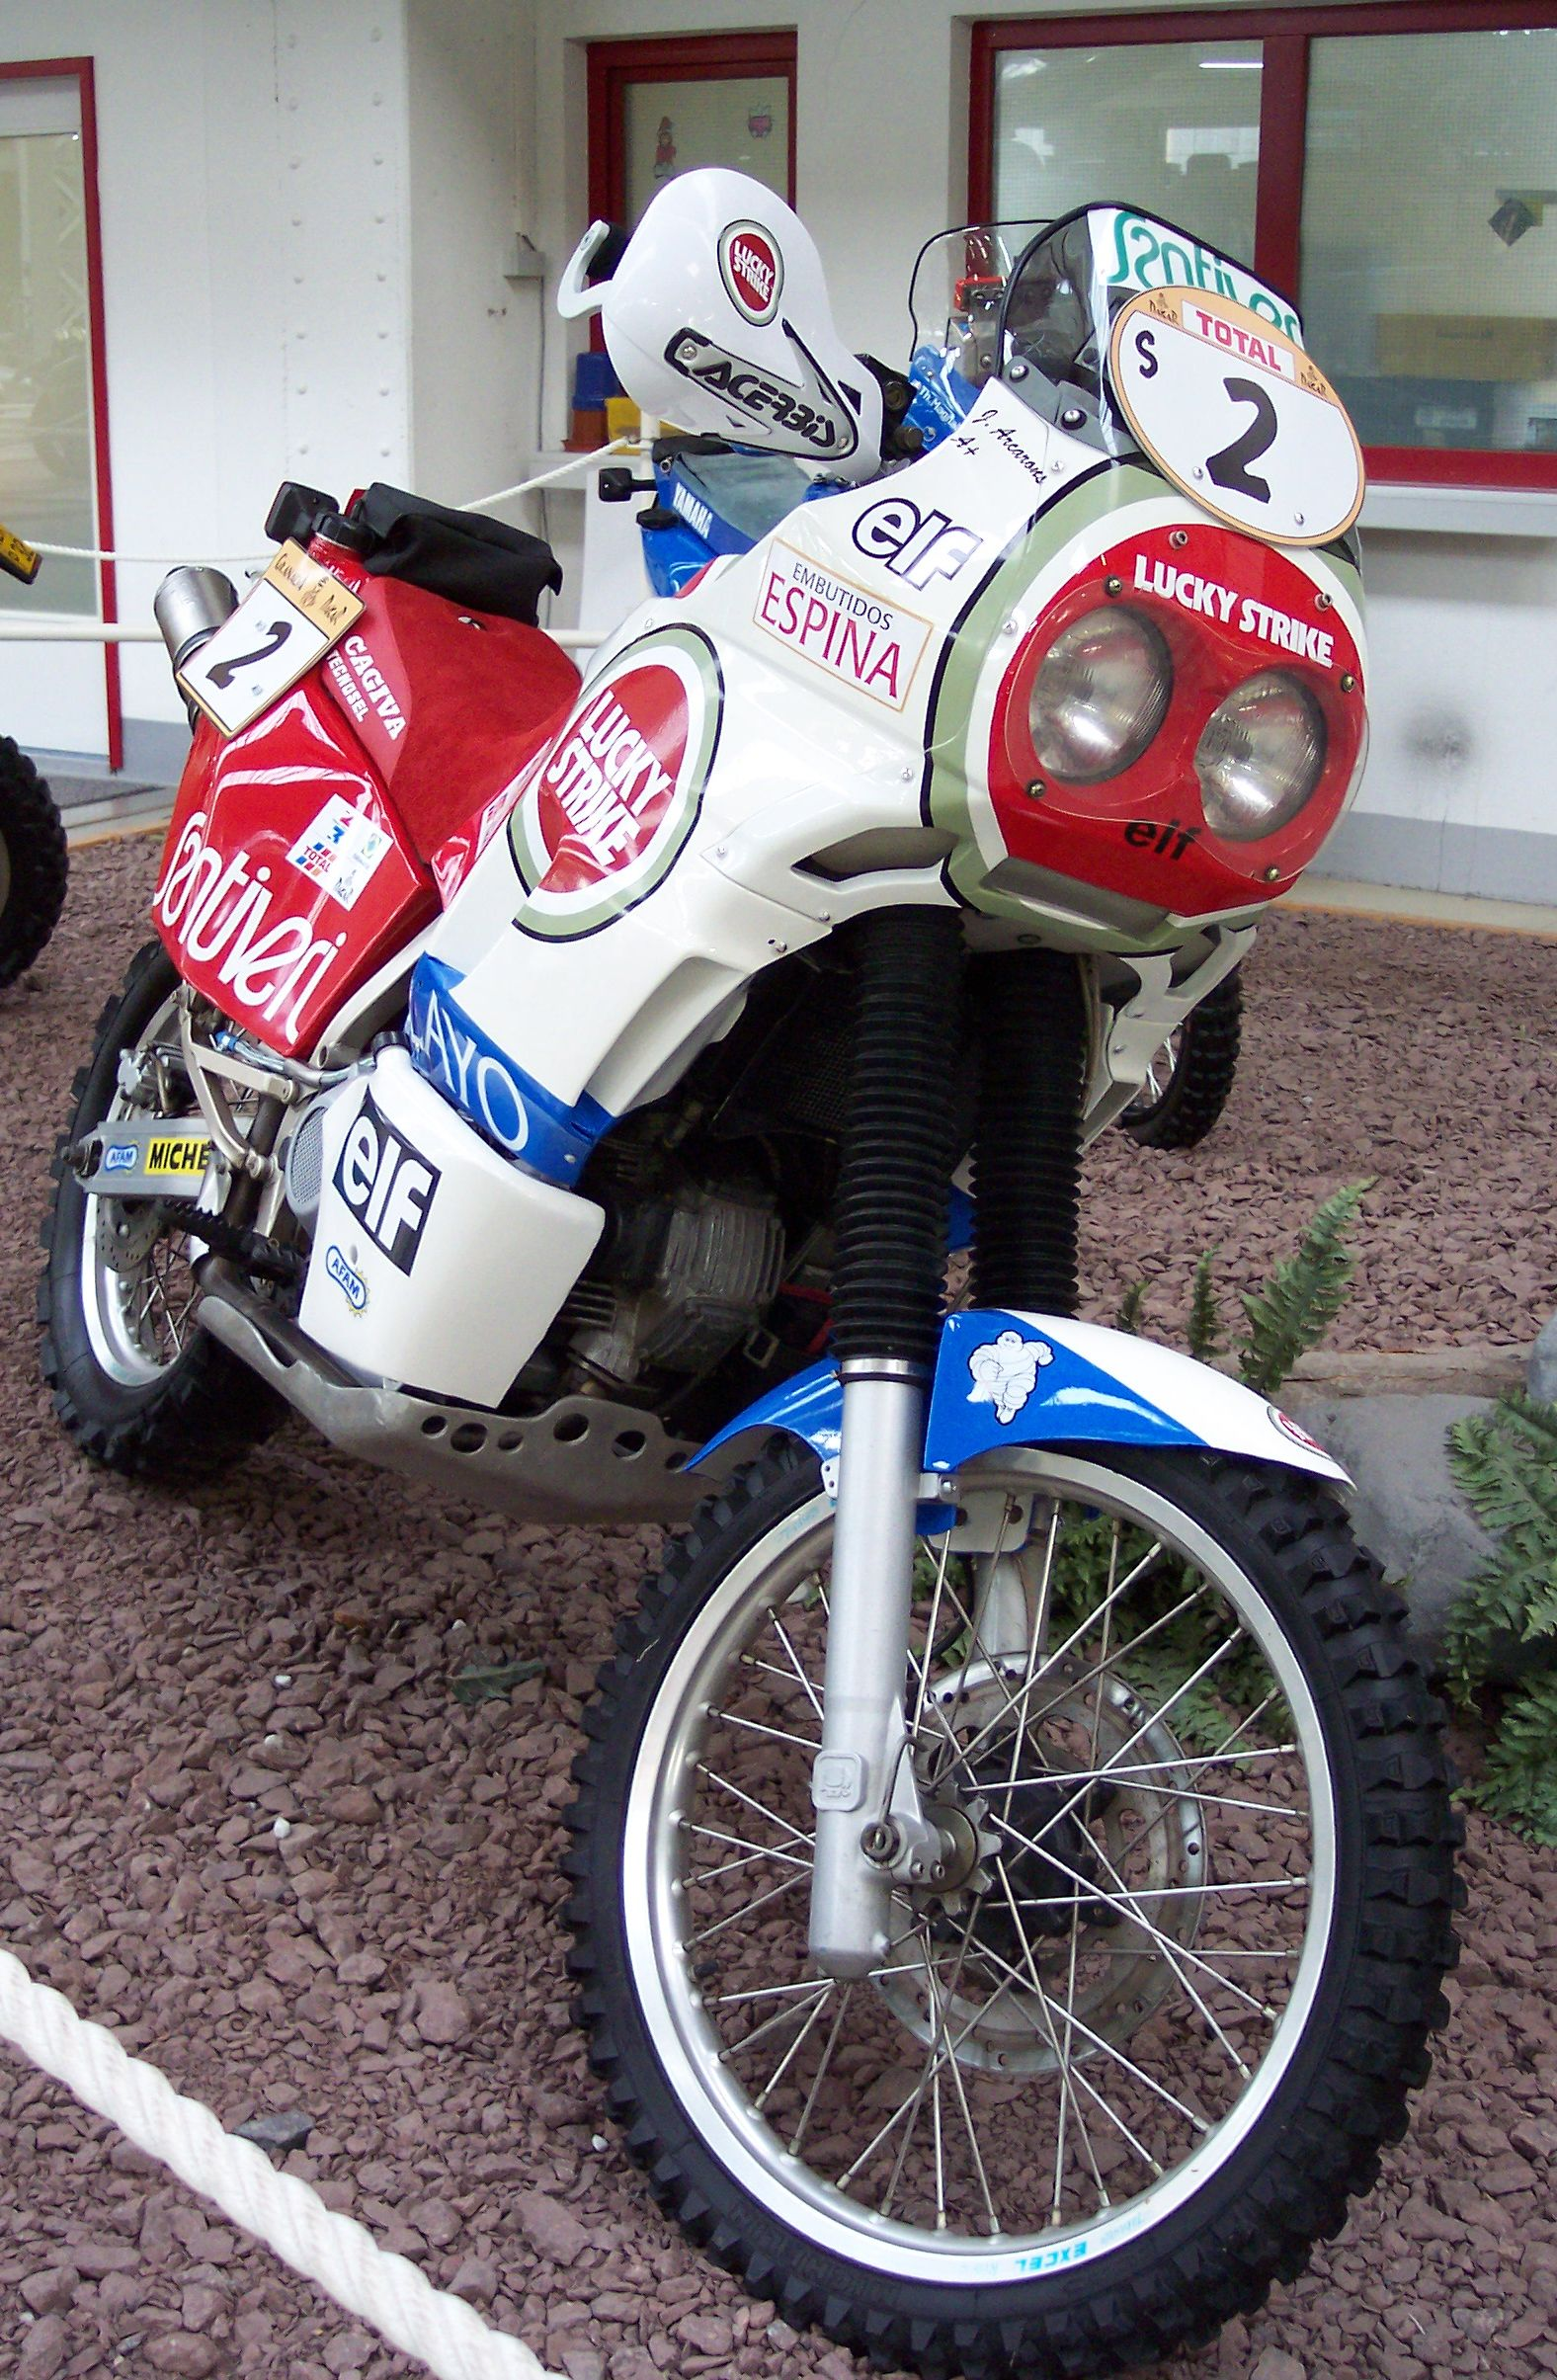 Cagiva SX 350 1979 images #66616